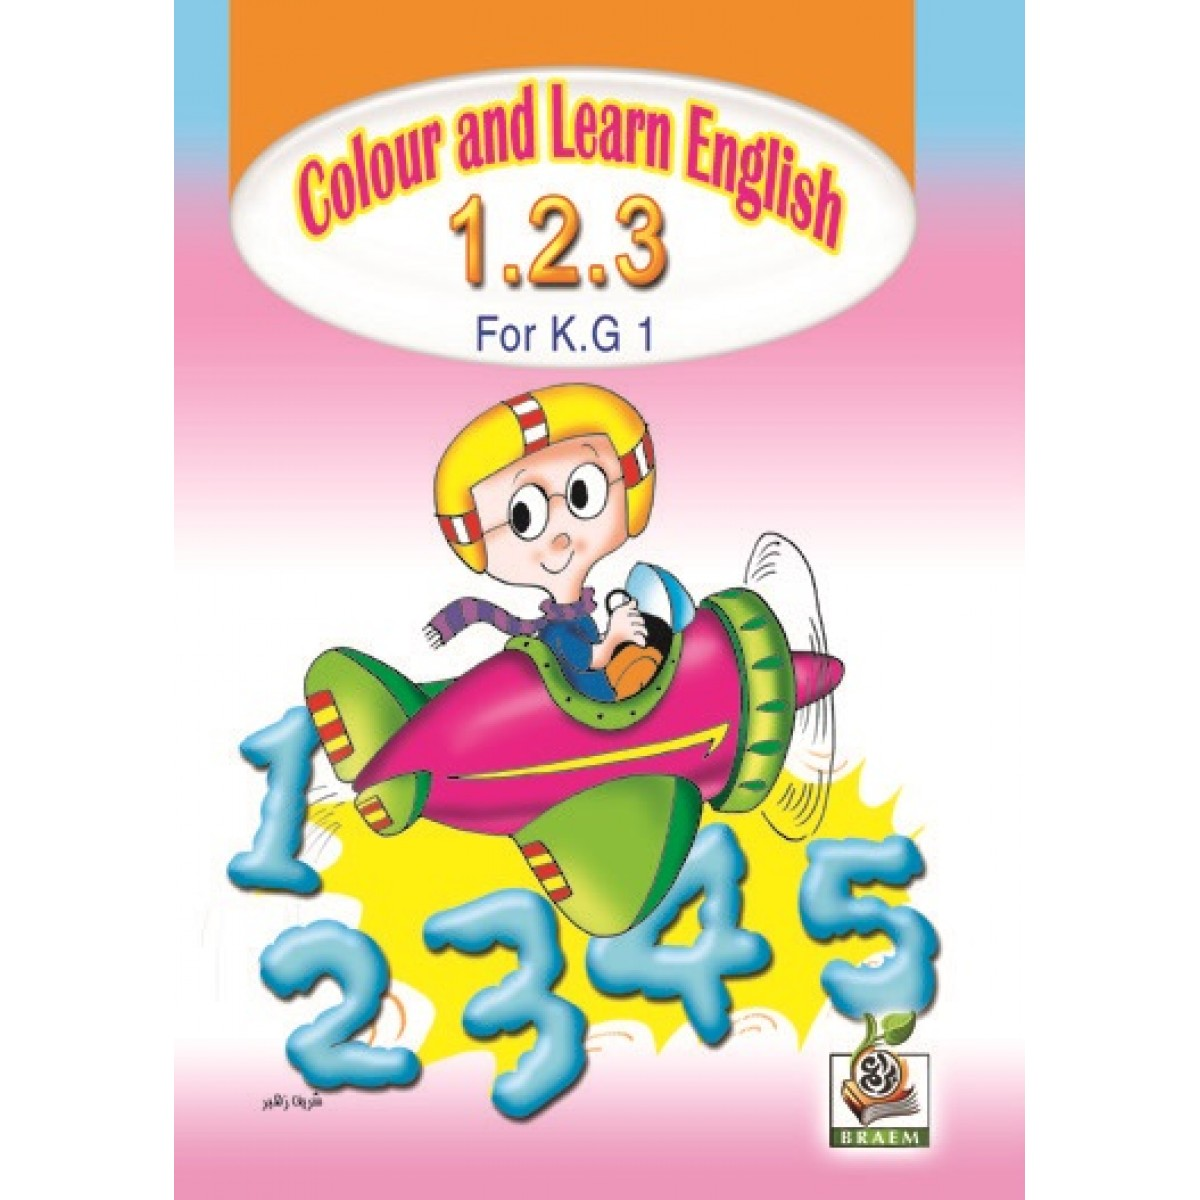 Colour and learn English 1.2.3  مستوى  K.G.1